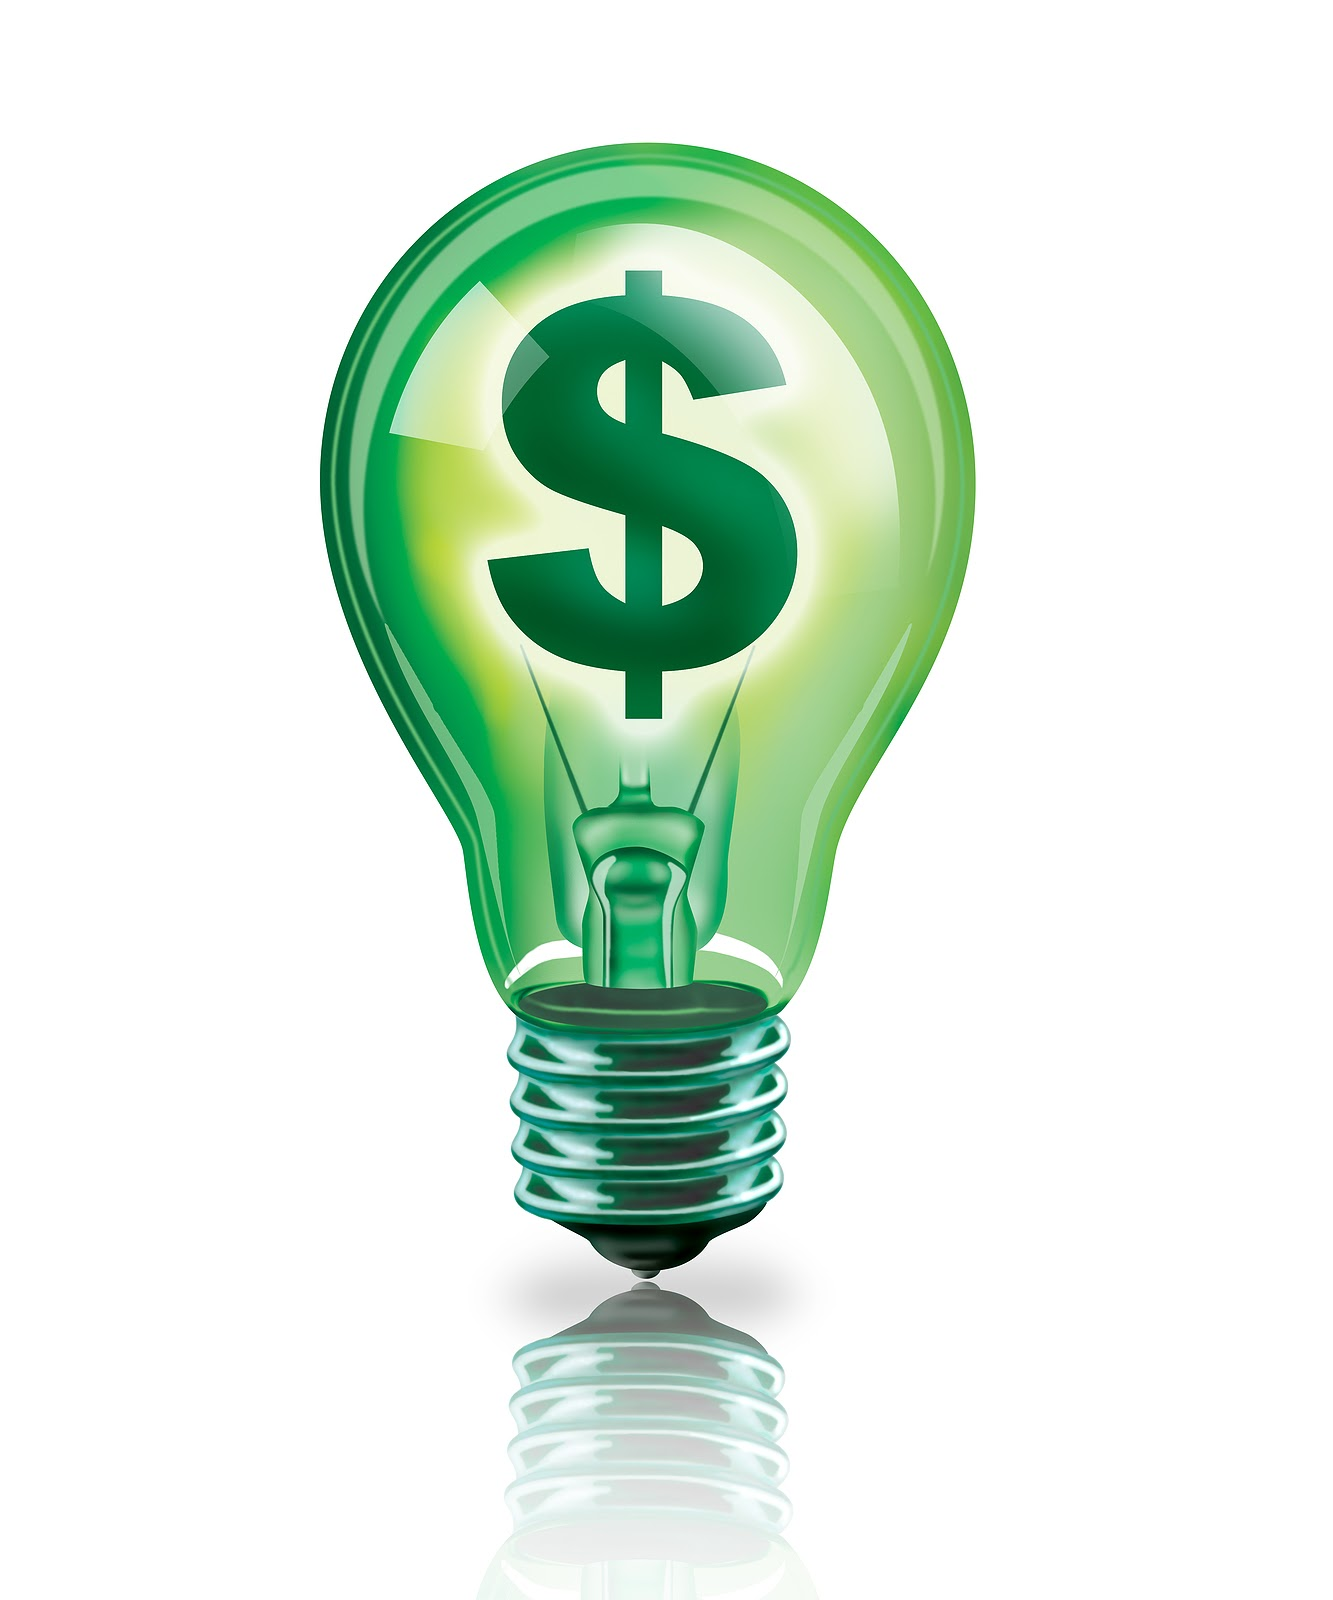 Green light bulb with a dollar sign inside of it.